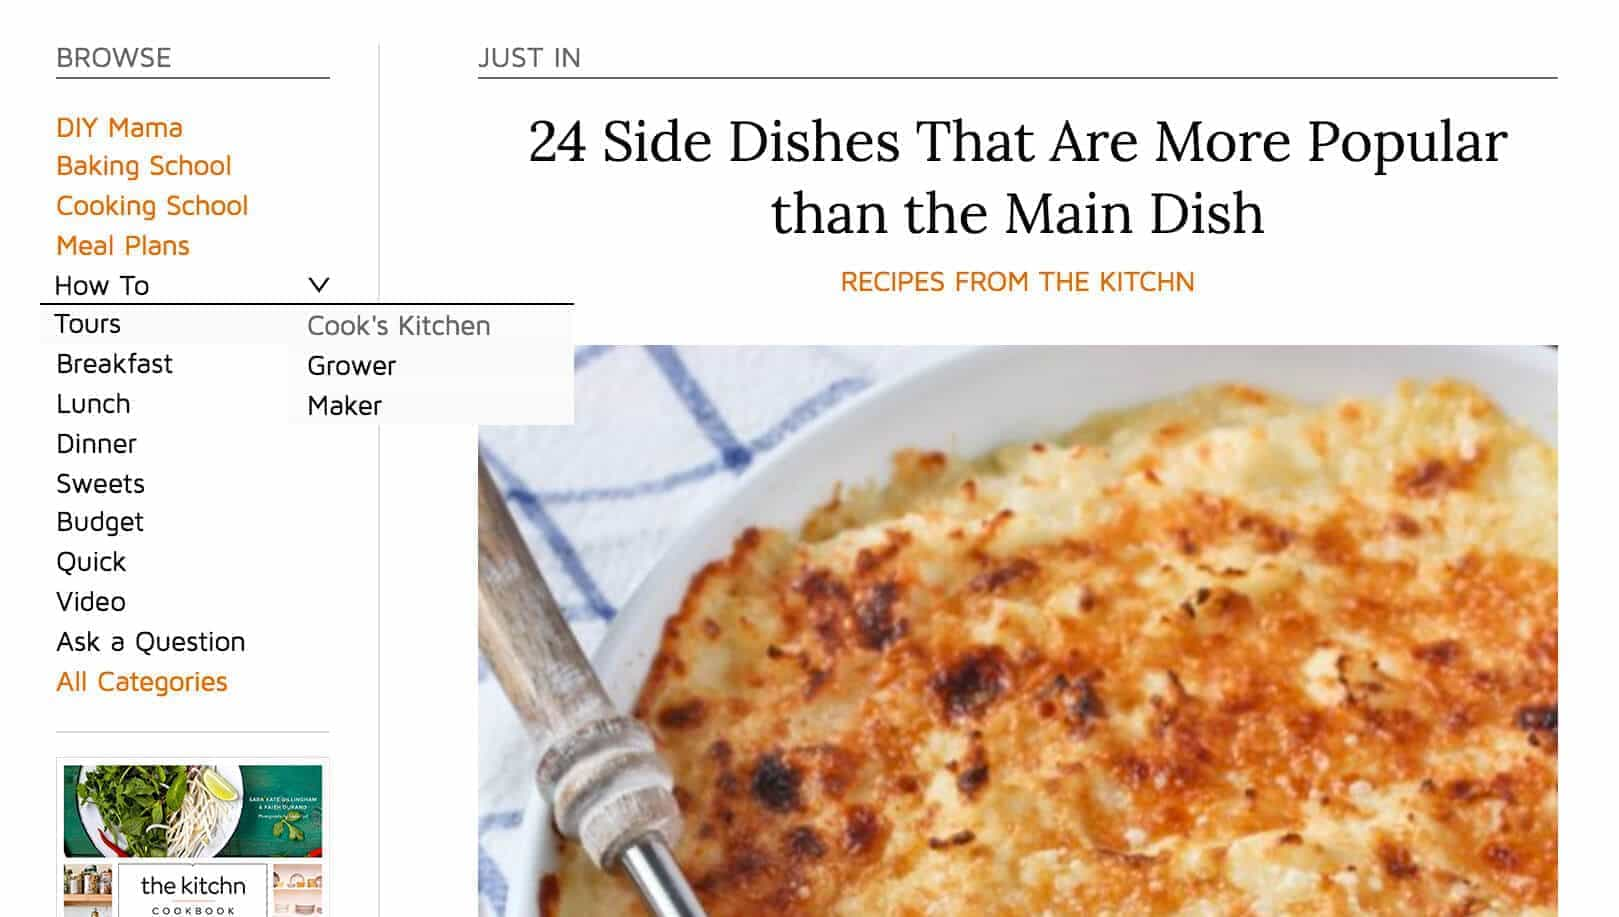 Drop-downs are used strategically at thekitchn.com.